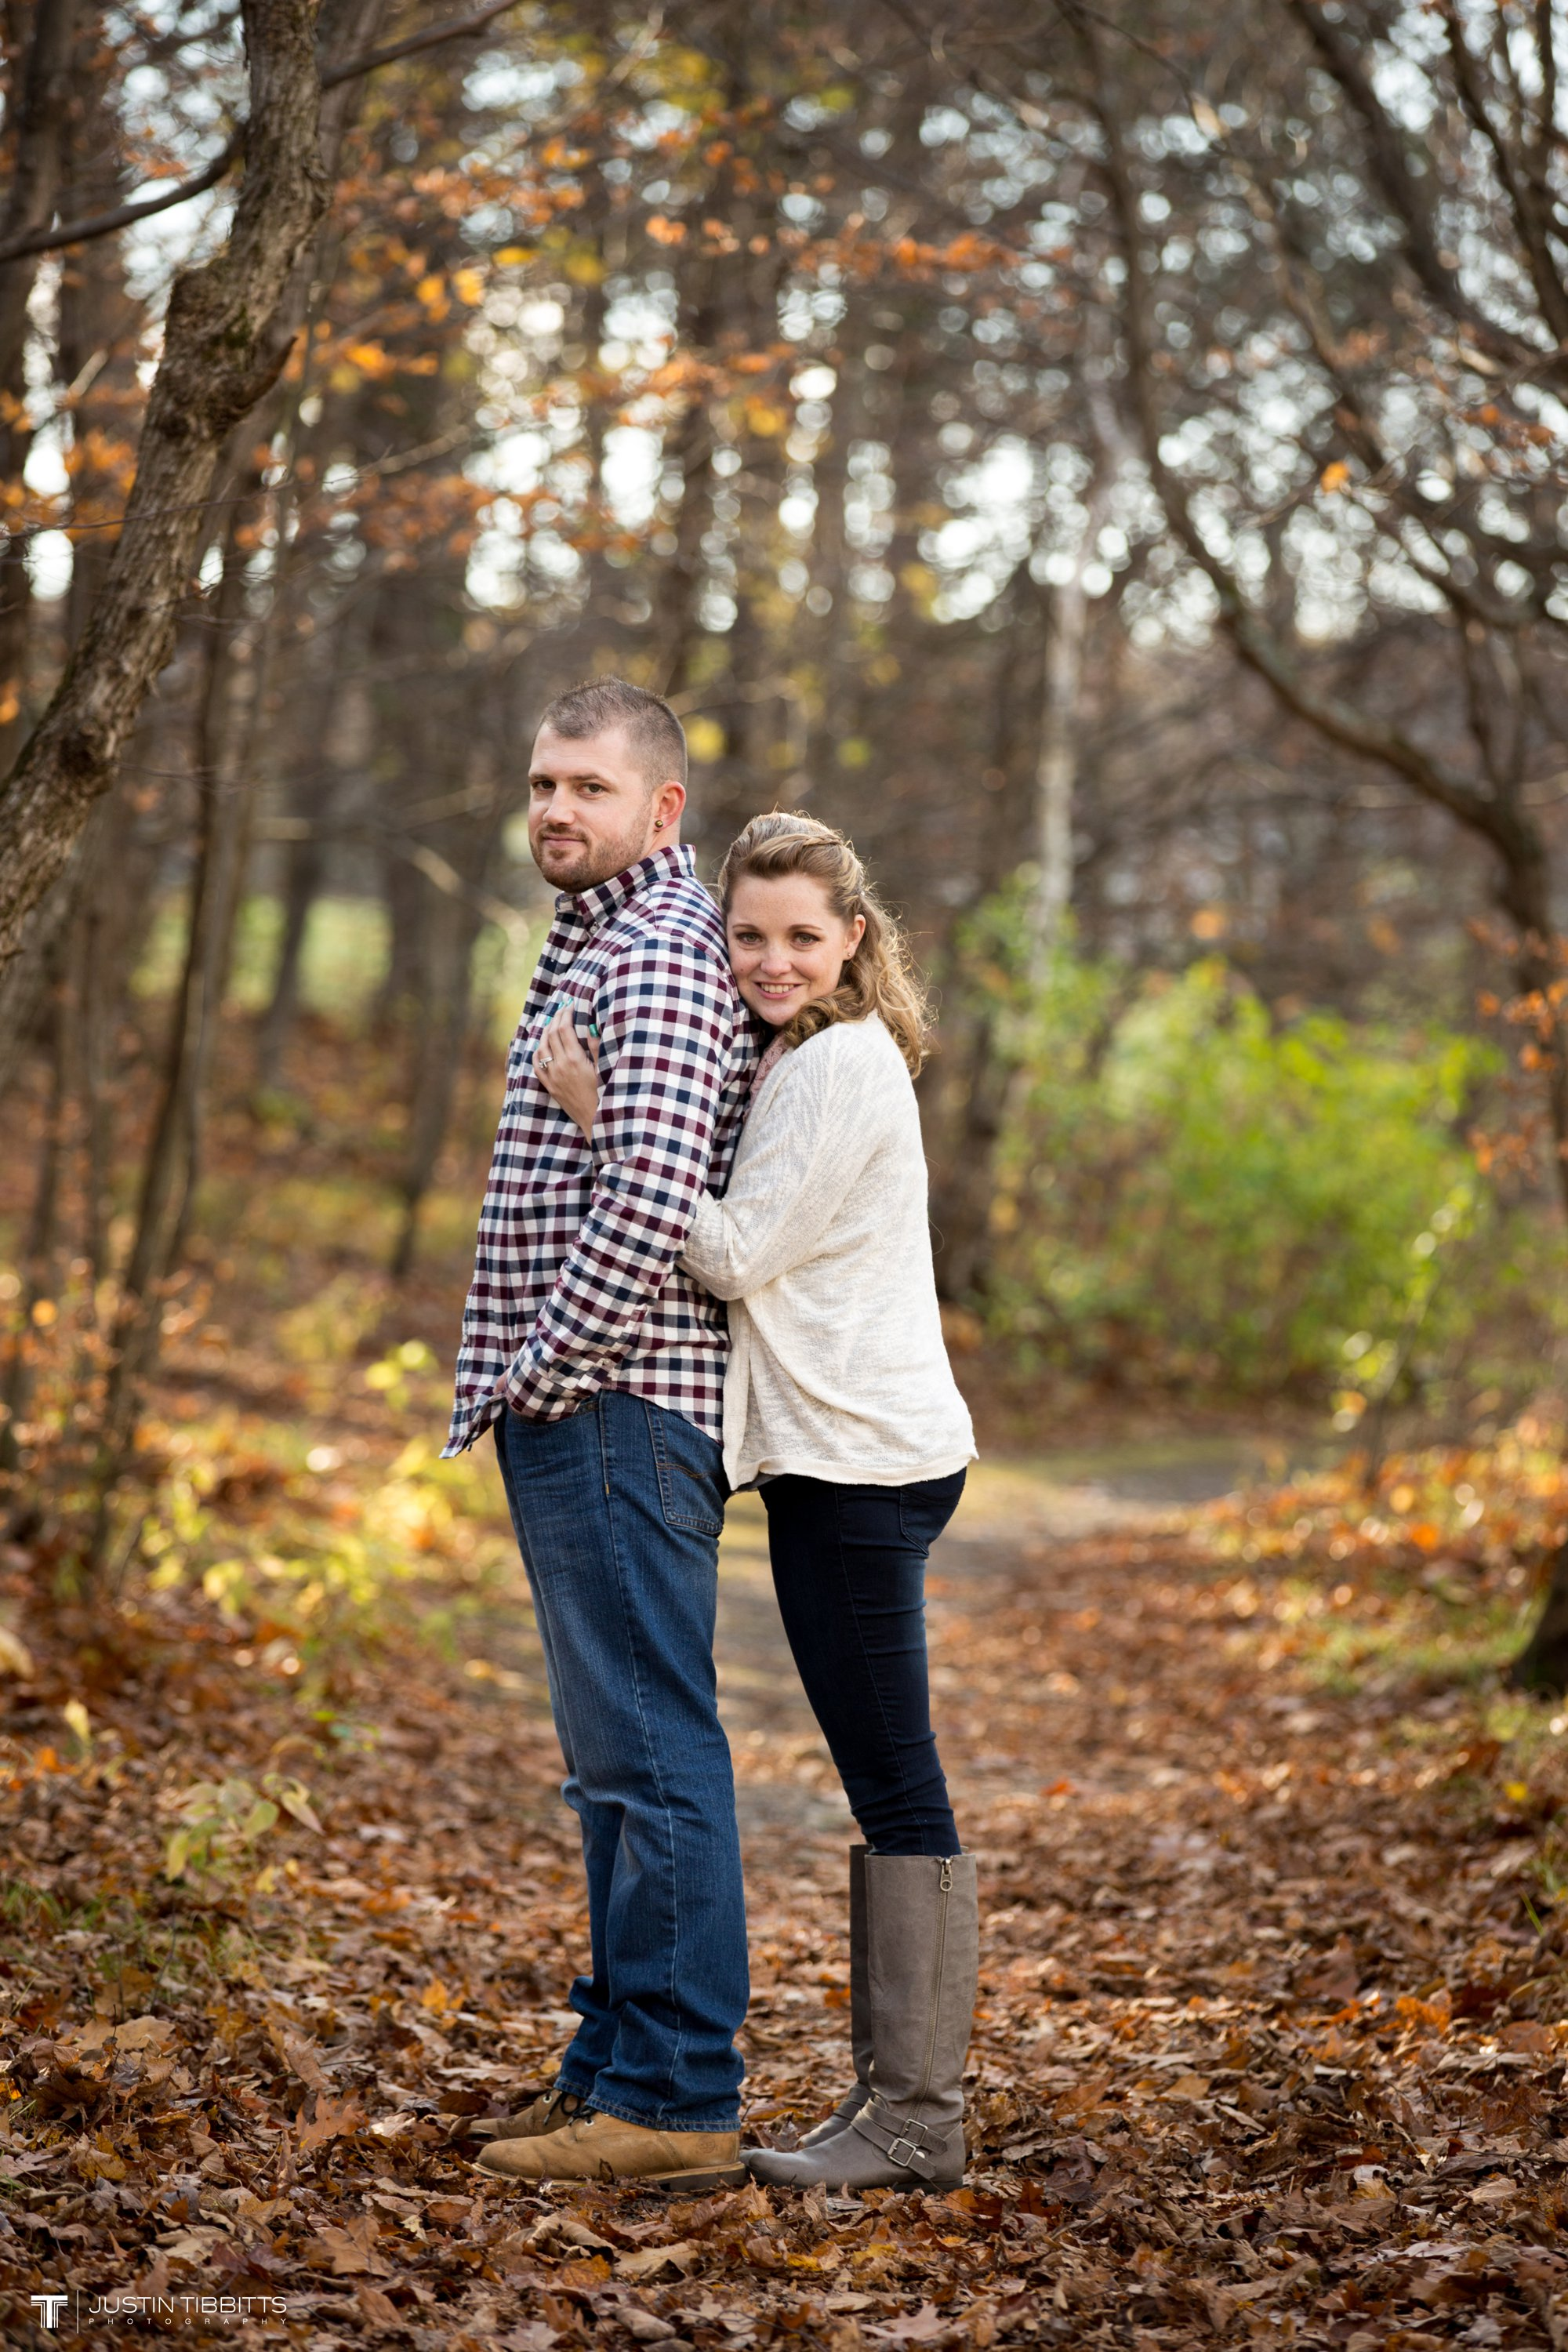 Justin Tibbitts Photography Ashlee and Steves Thatcher Park, New York Engagement Shoot-52